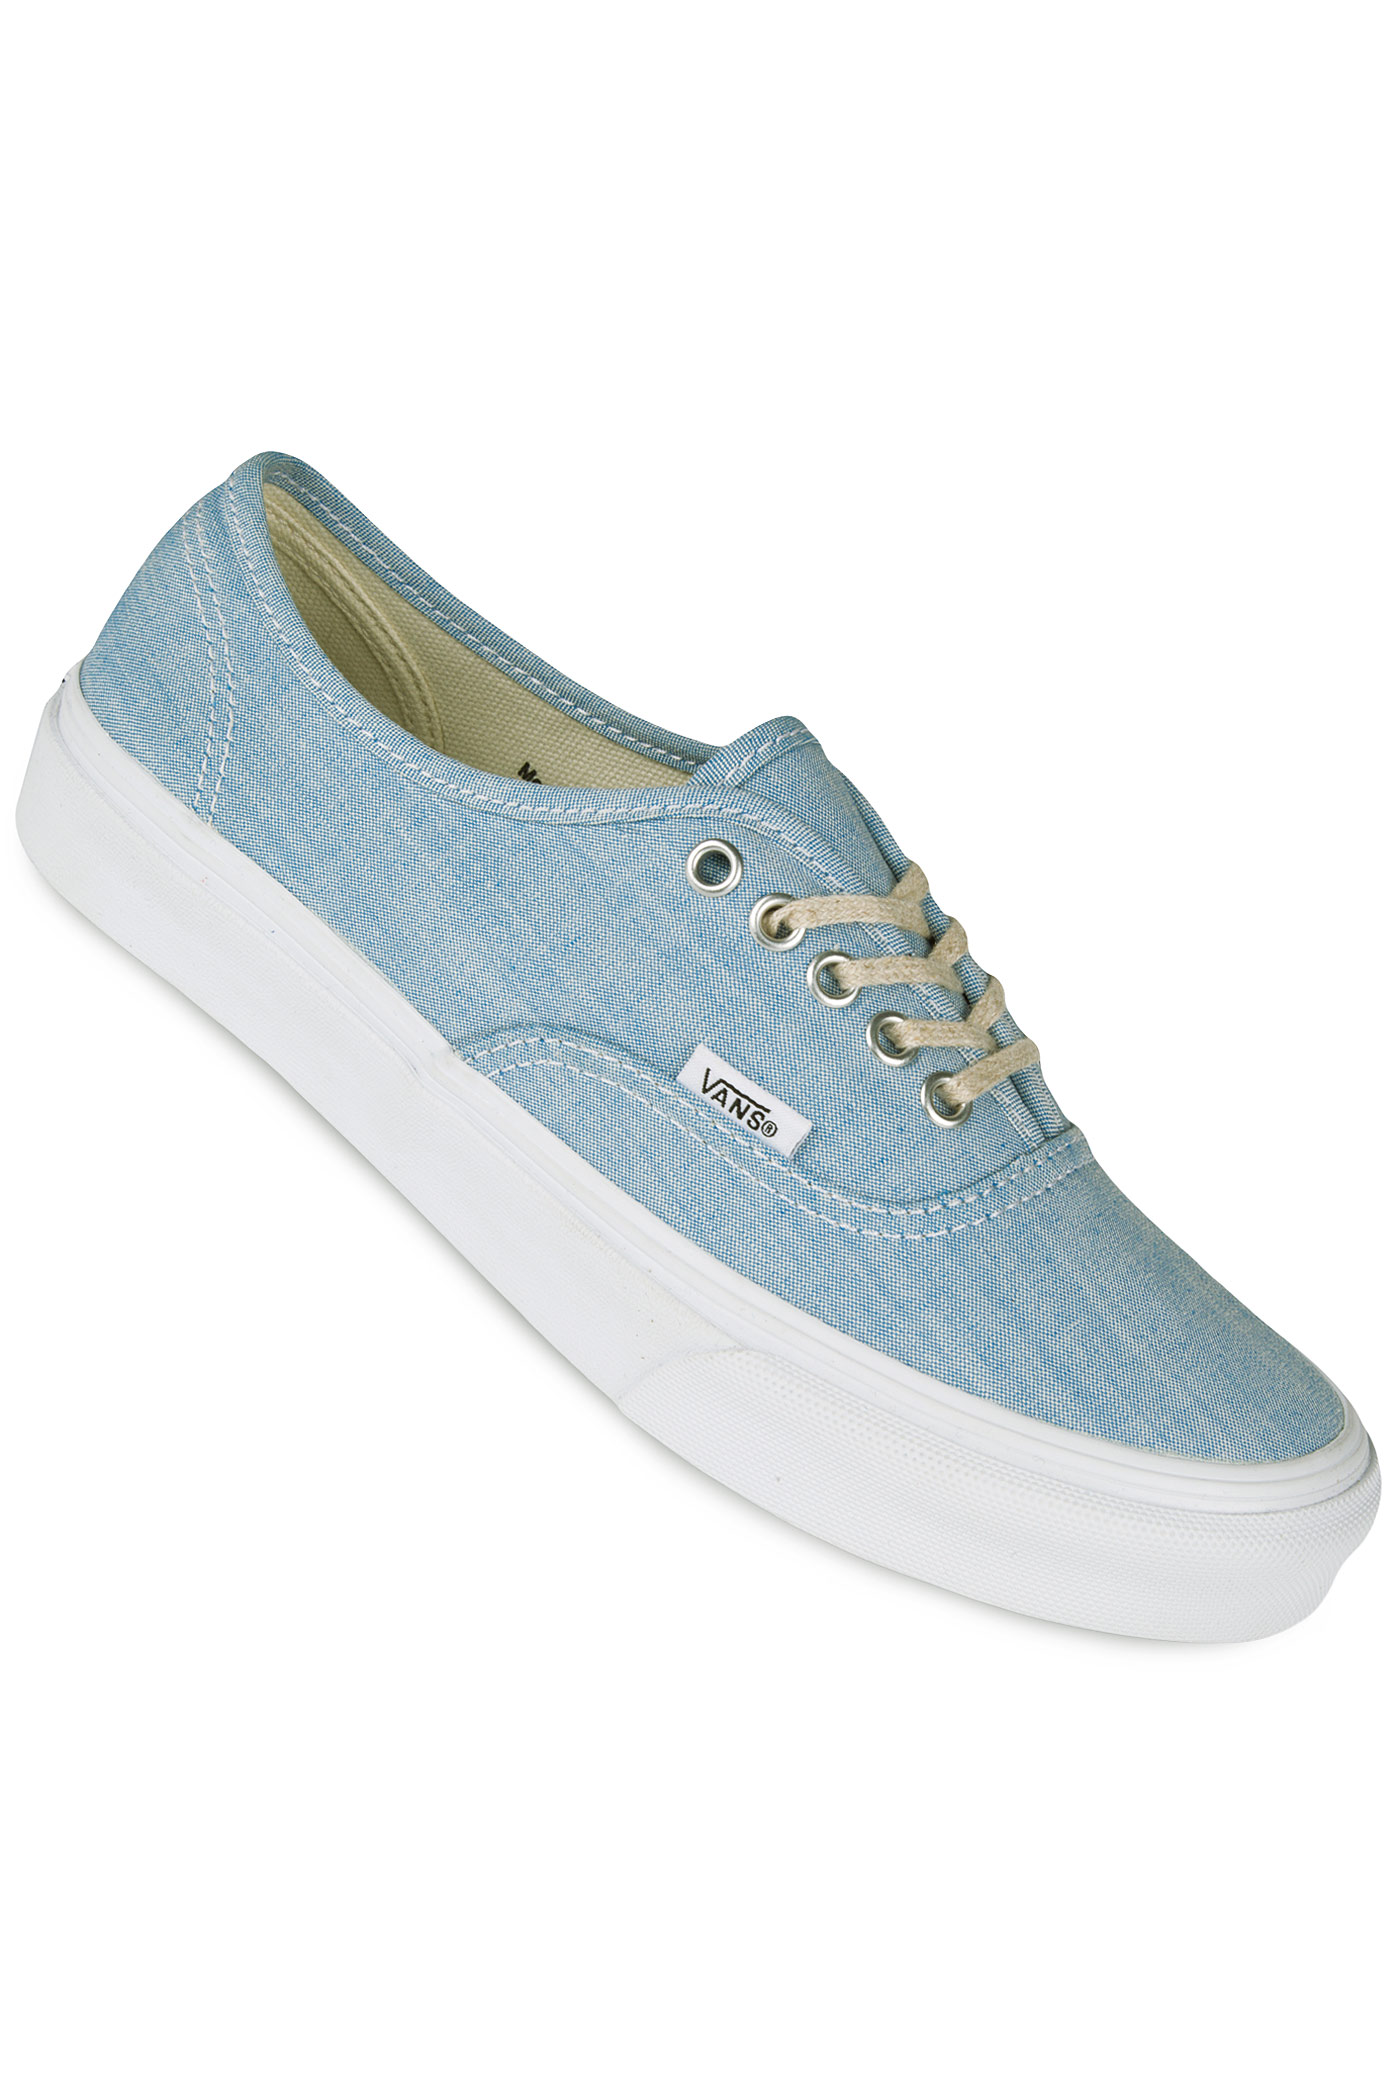 Perfect  Vans Women Shoes  Vans Authentic Low Top Shoes Blue Turquoise Women